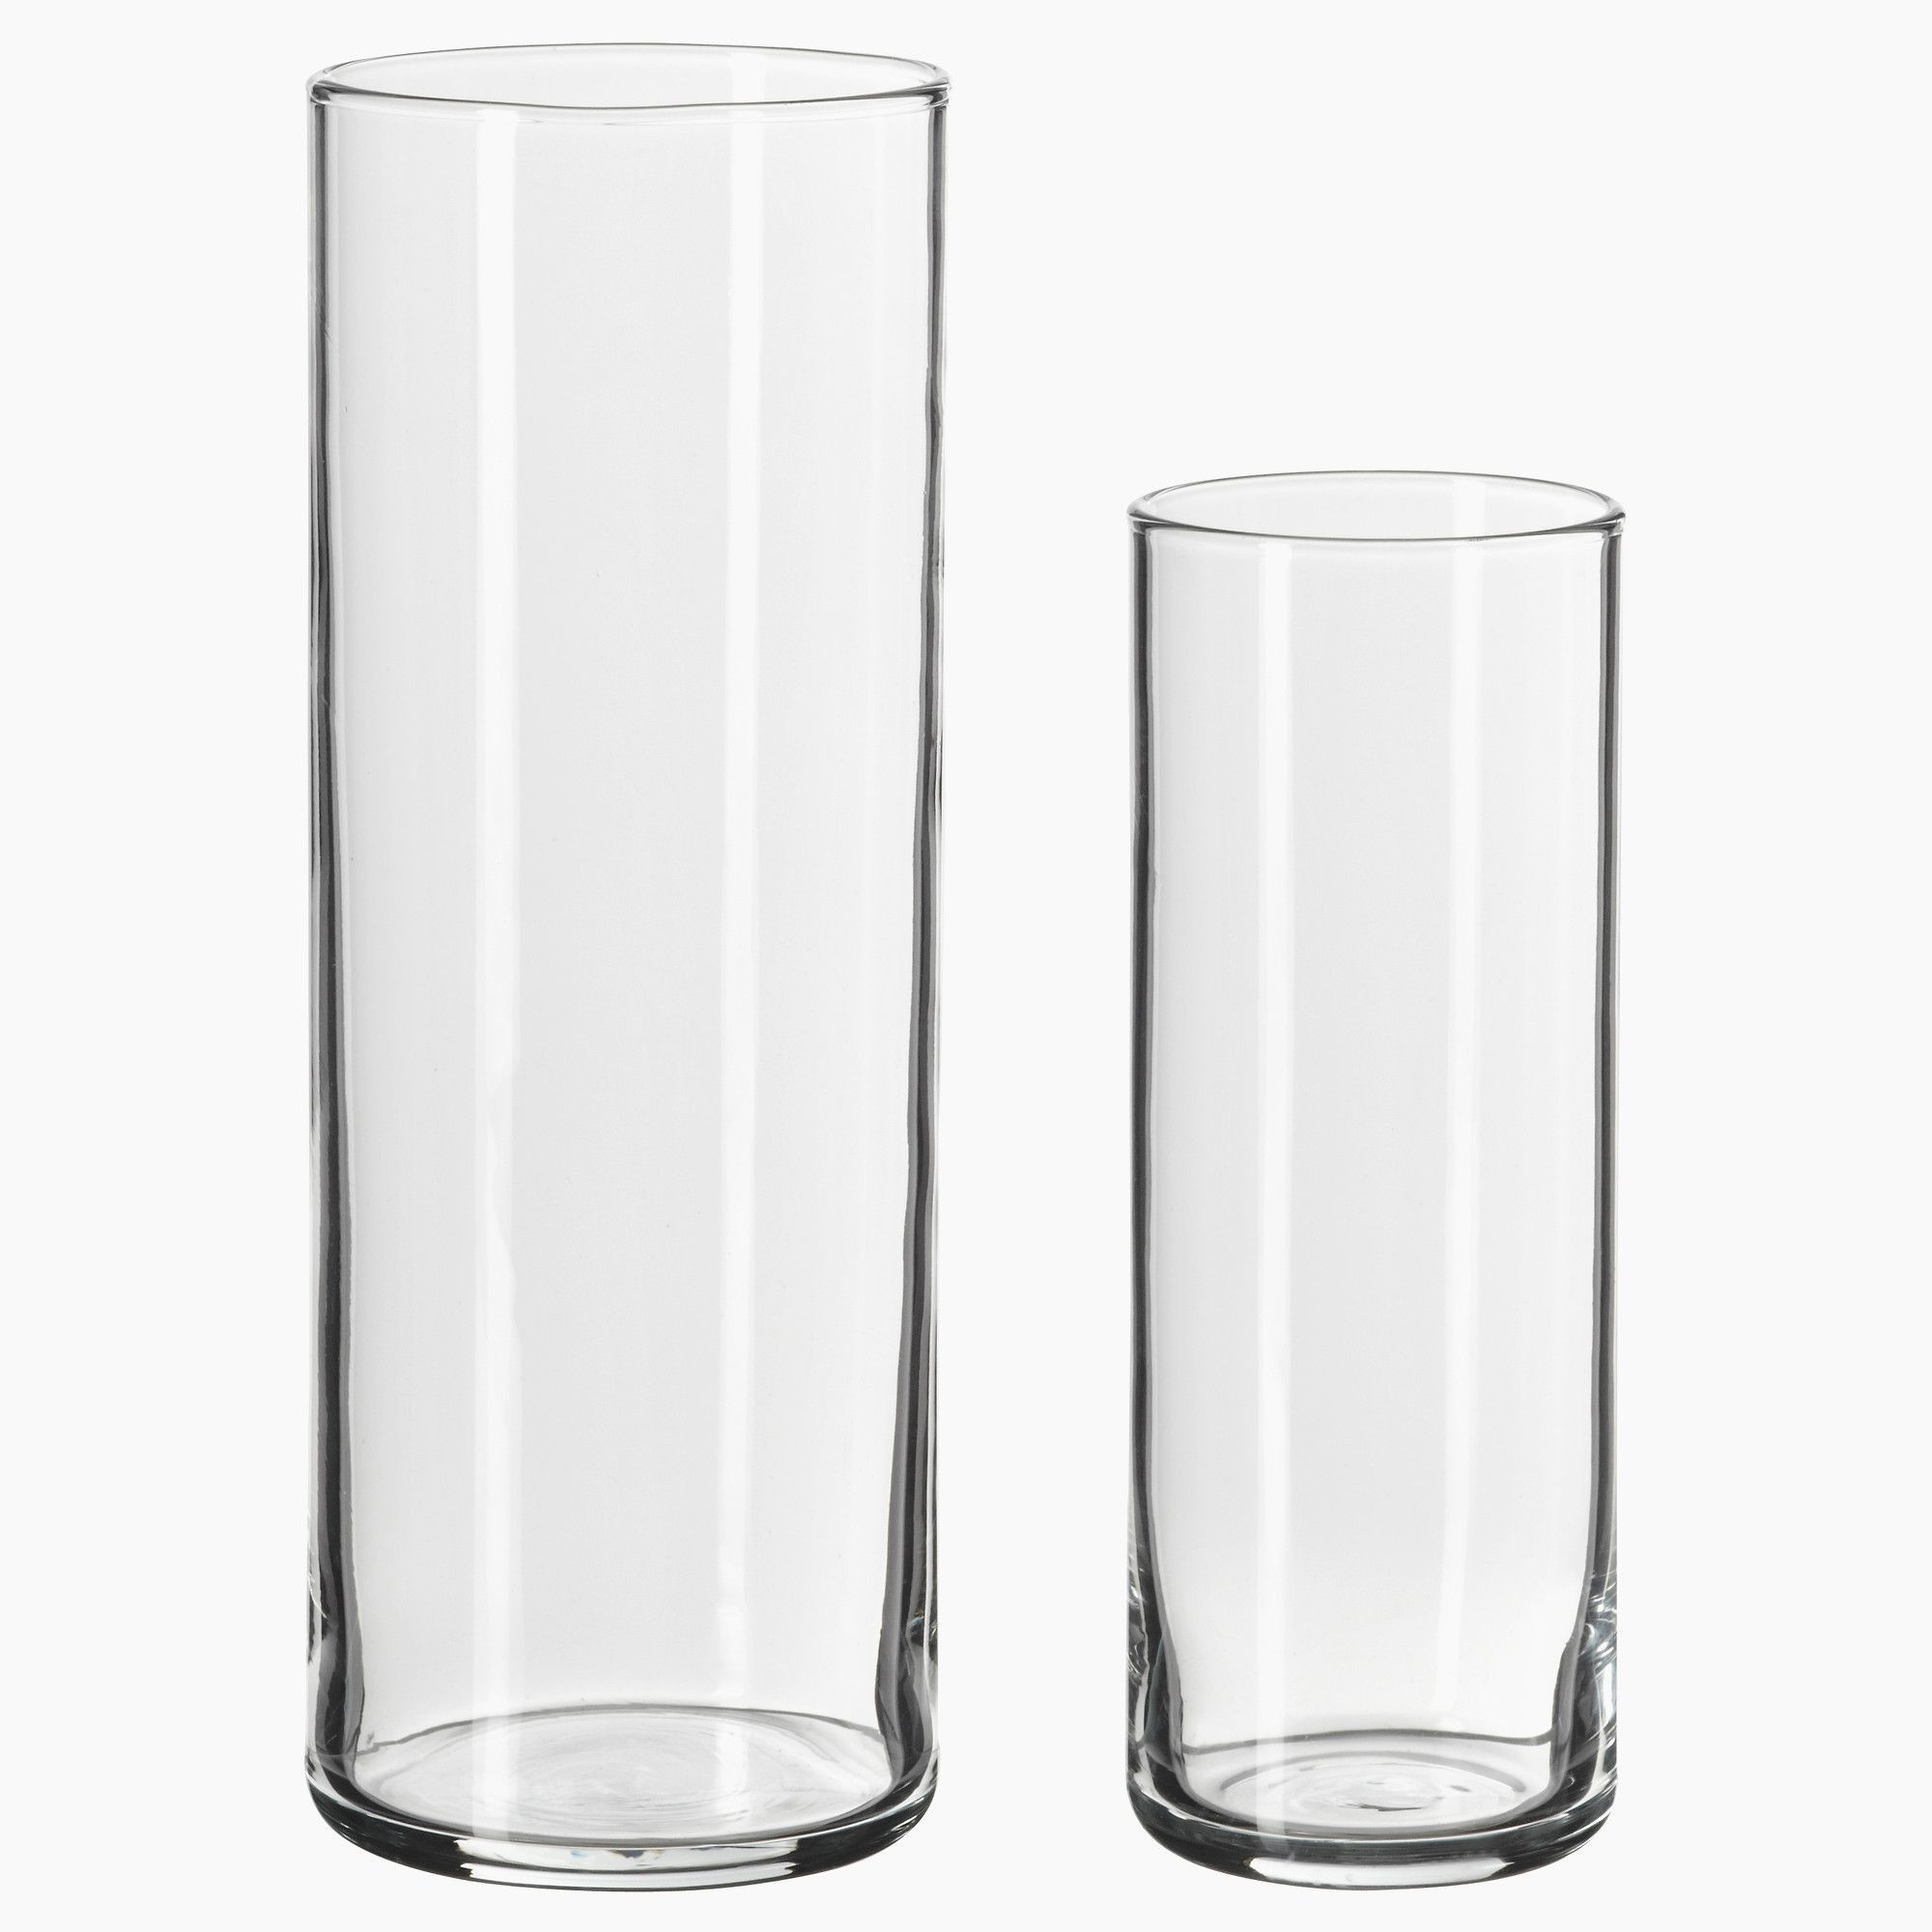 glass marble vase fillers of 24 tall vases for sale the weekly world intended for wooden wall vase new tall vase centerpiece ideas vases flowers in